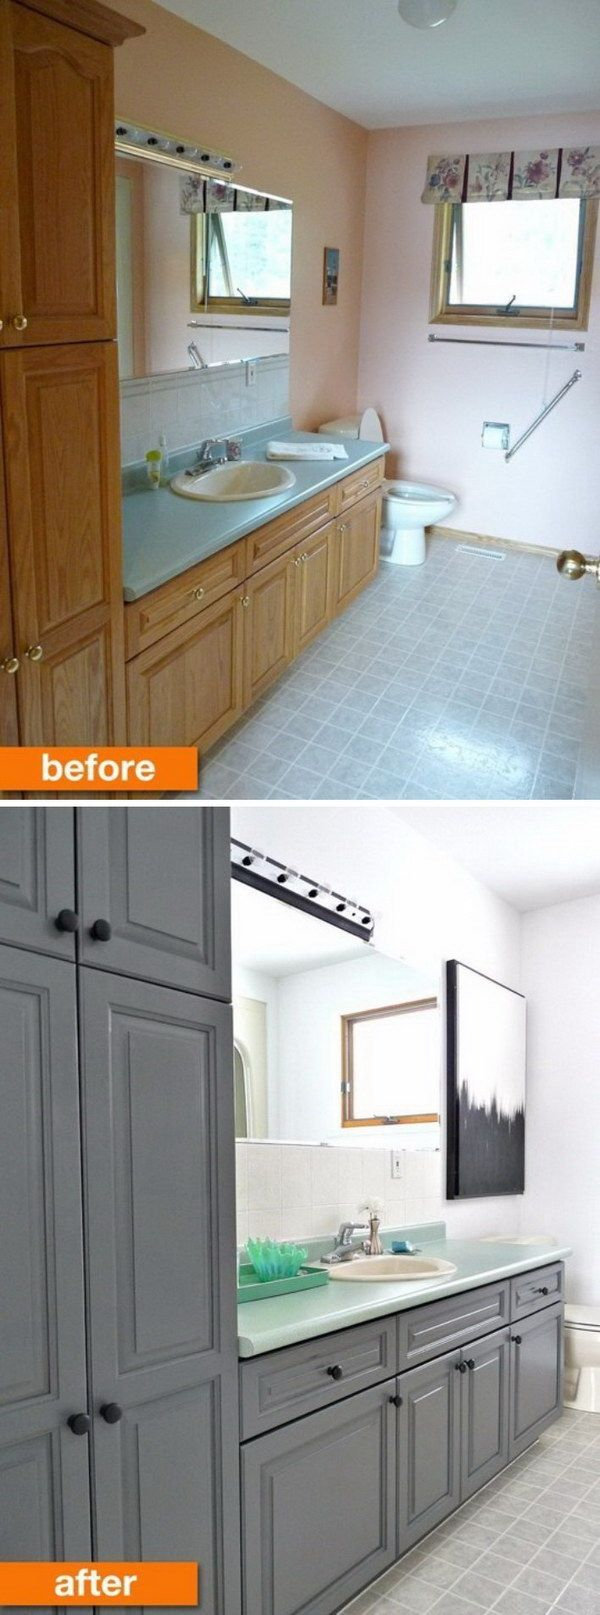 Generous Kitchen Bath And Beyond Tampa Small Small Corner Mirror Bathroom Cabinet Clean Bathtub 60 X 32 X 21 Vintage Cast Iron Bathtub Value Old Can You Have A Spa Bath When Your Pregnant SoftRebath Average Costs 1000  Ideas About Budget Bathroom Remodel On Pinterest ..